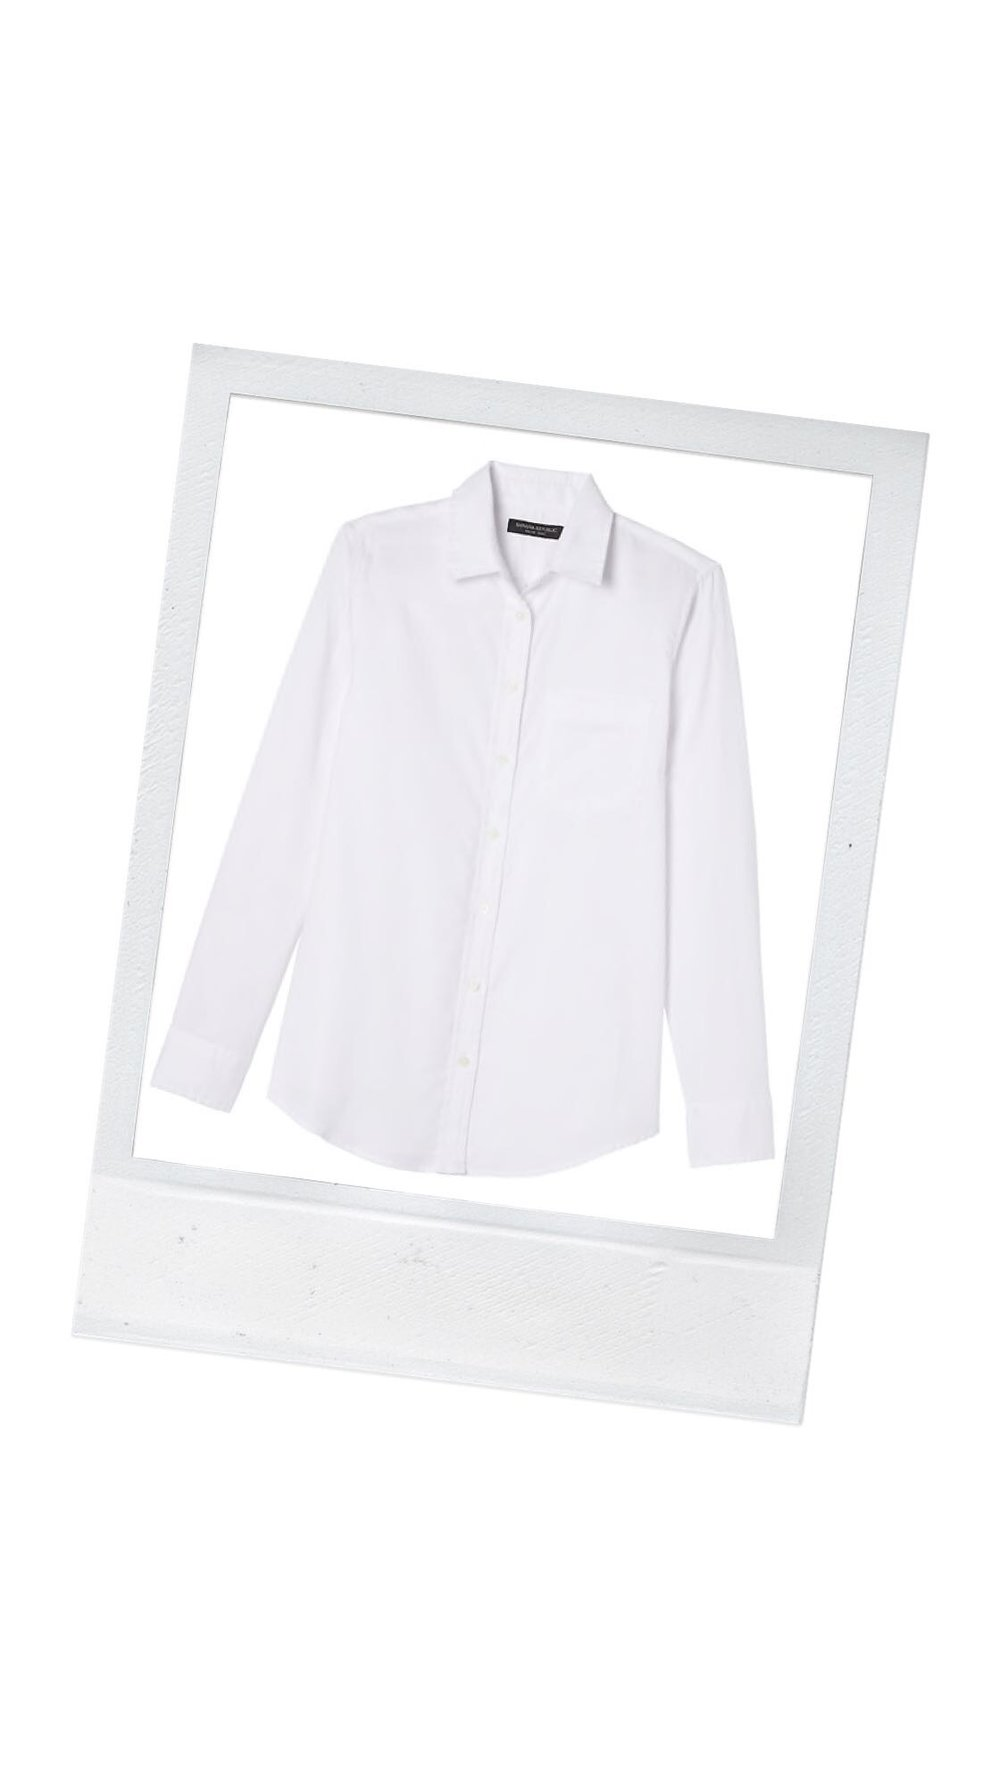 the-oxford-shirt.JPG